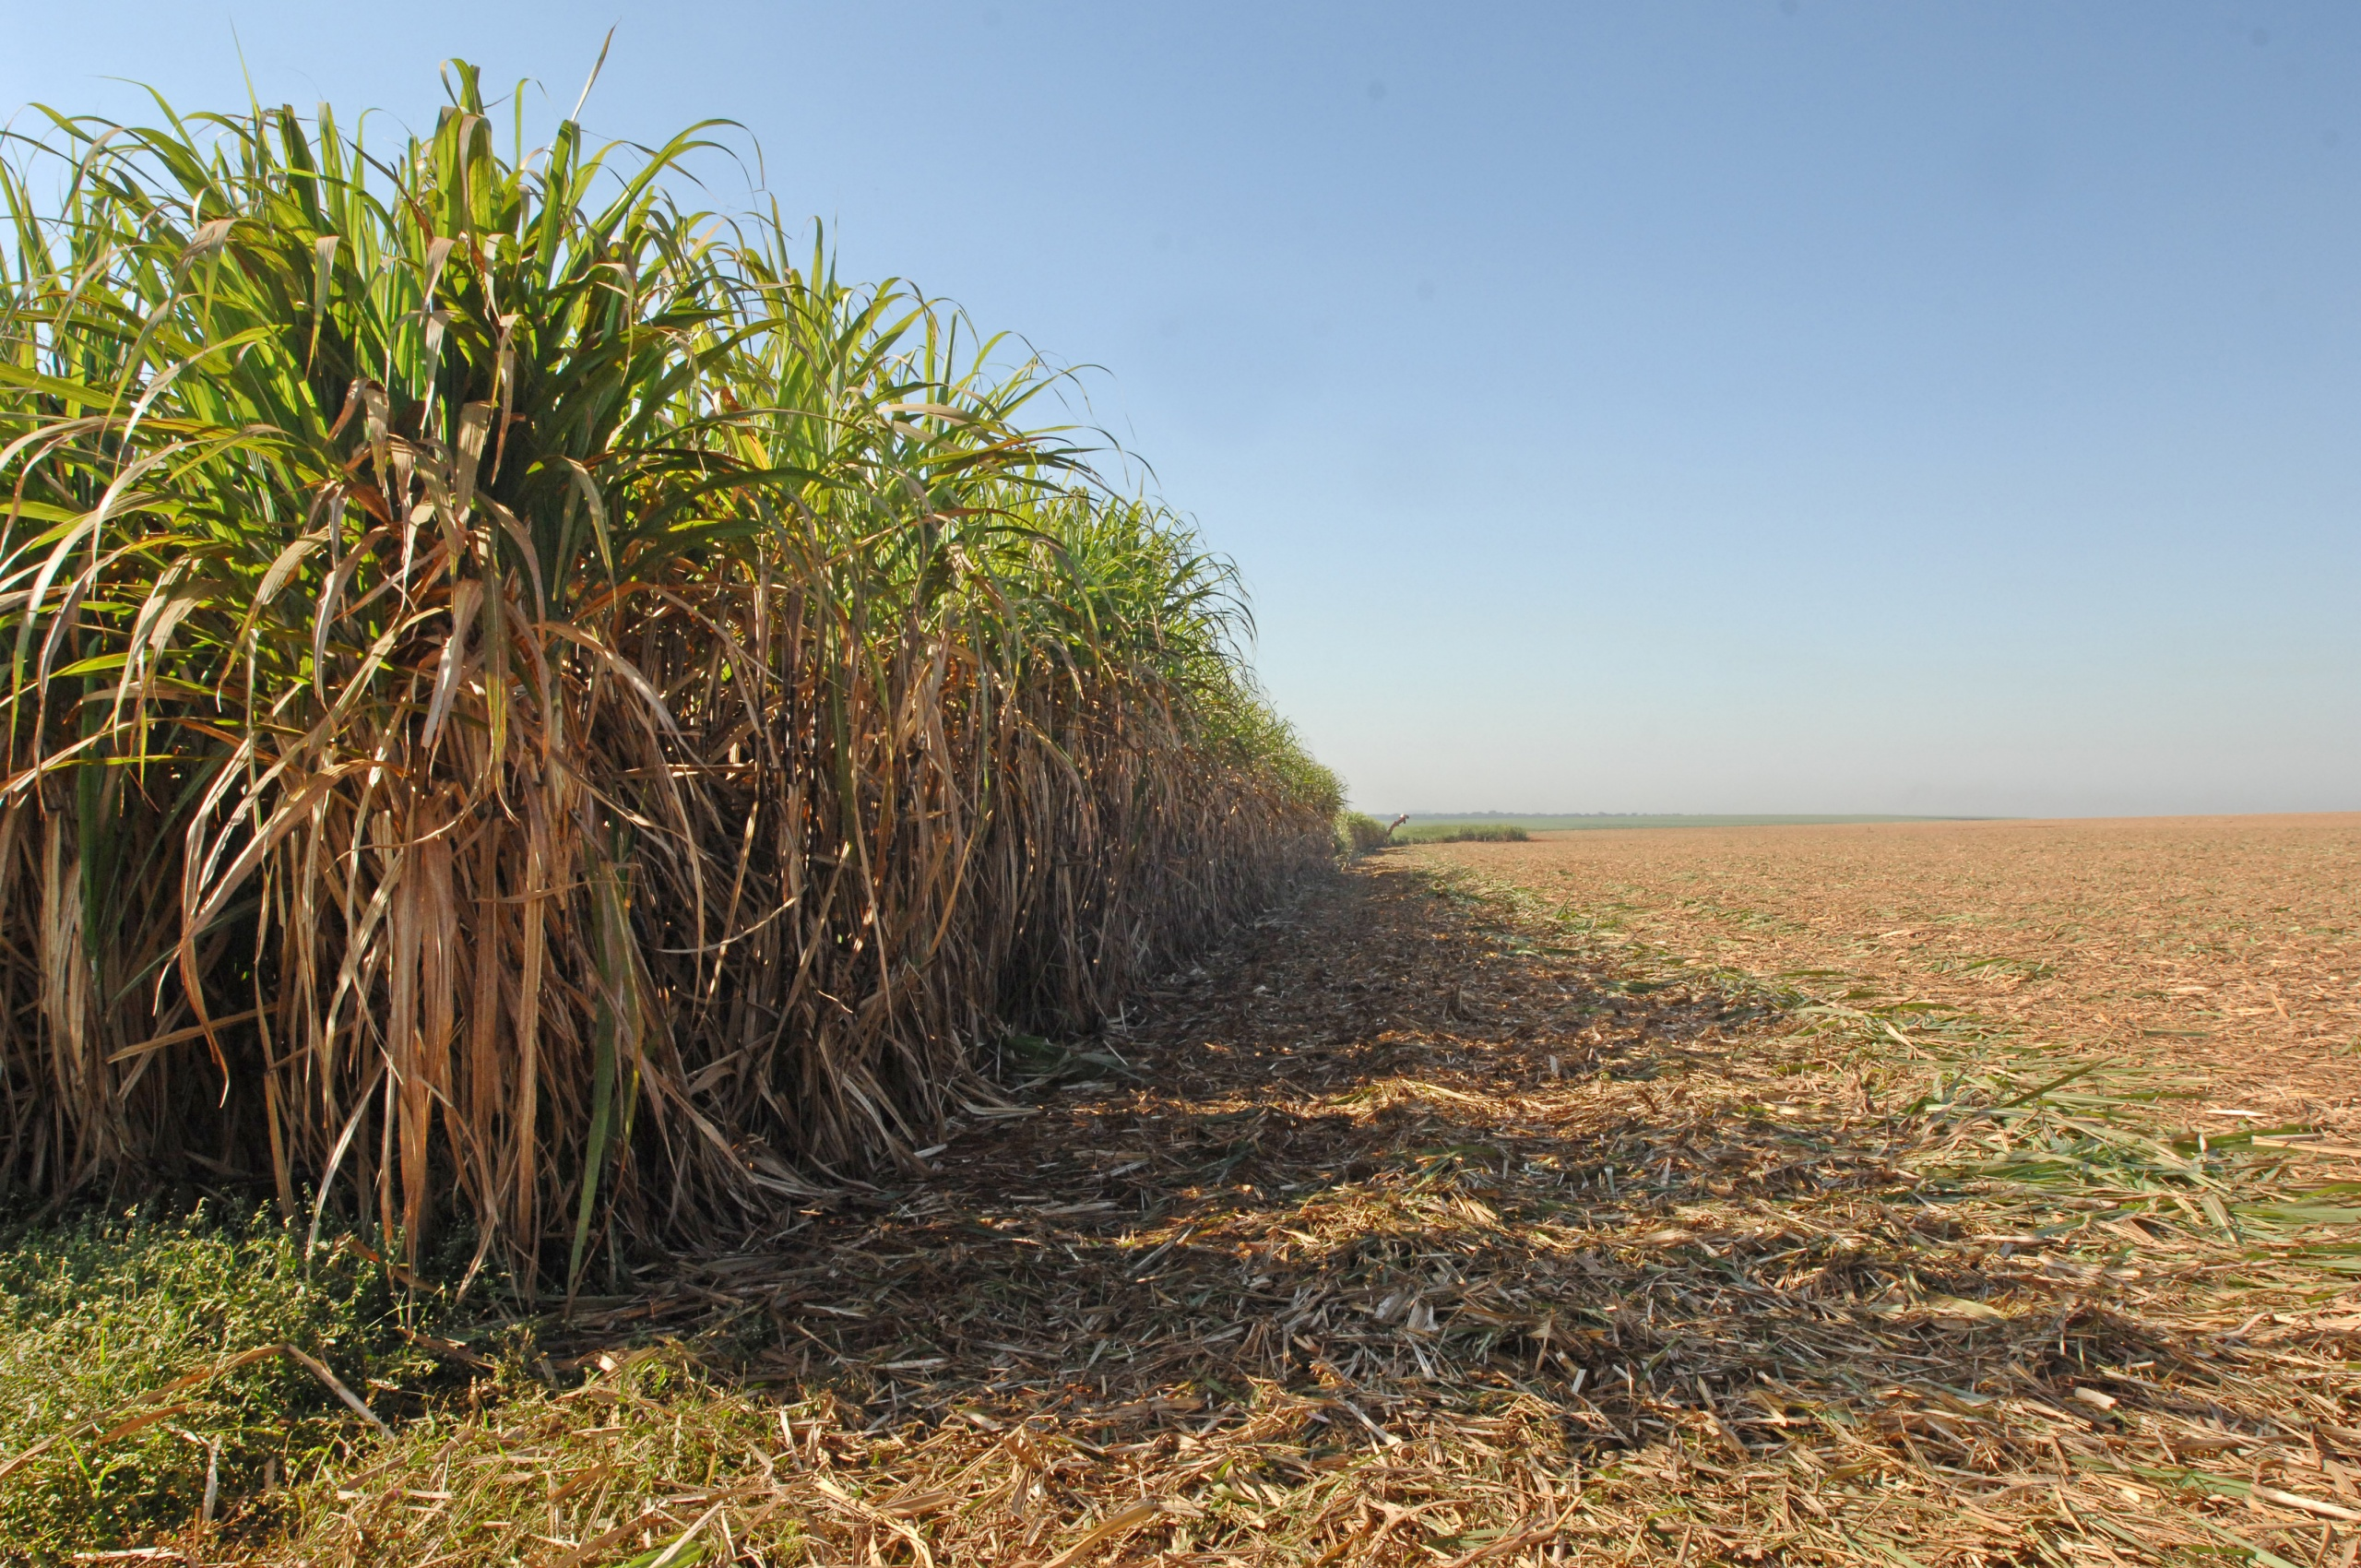 Sugarcane harvest for the first half of August 2020